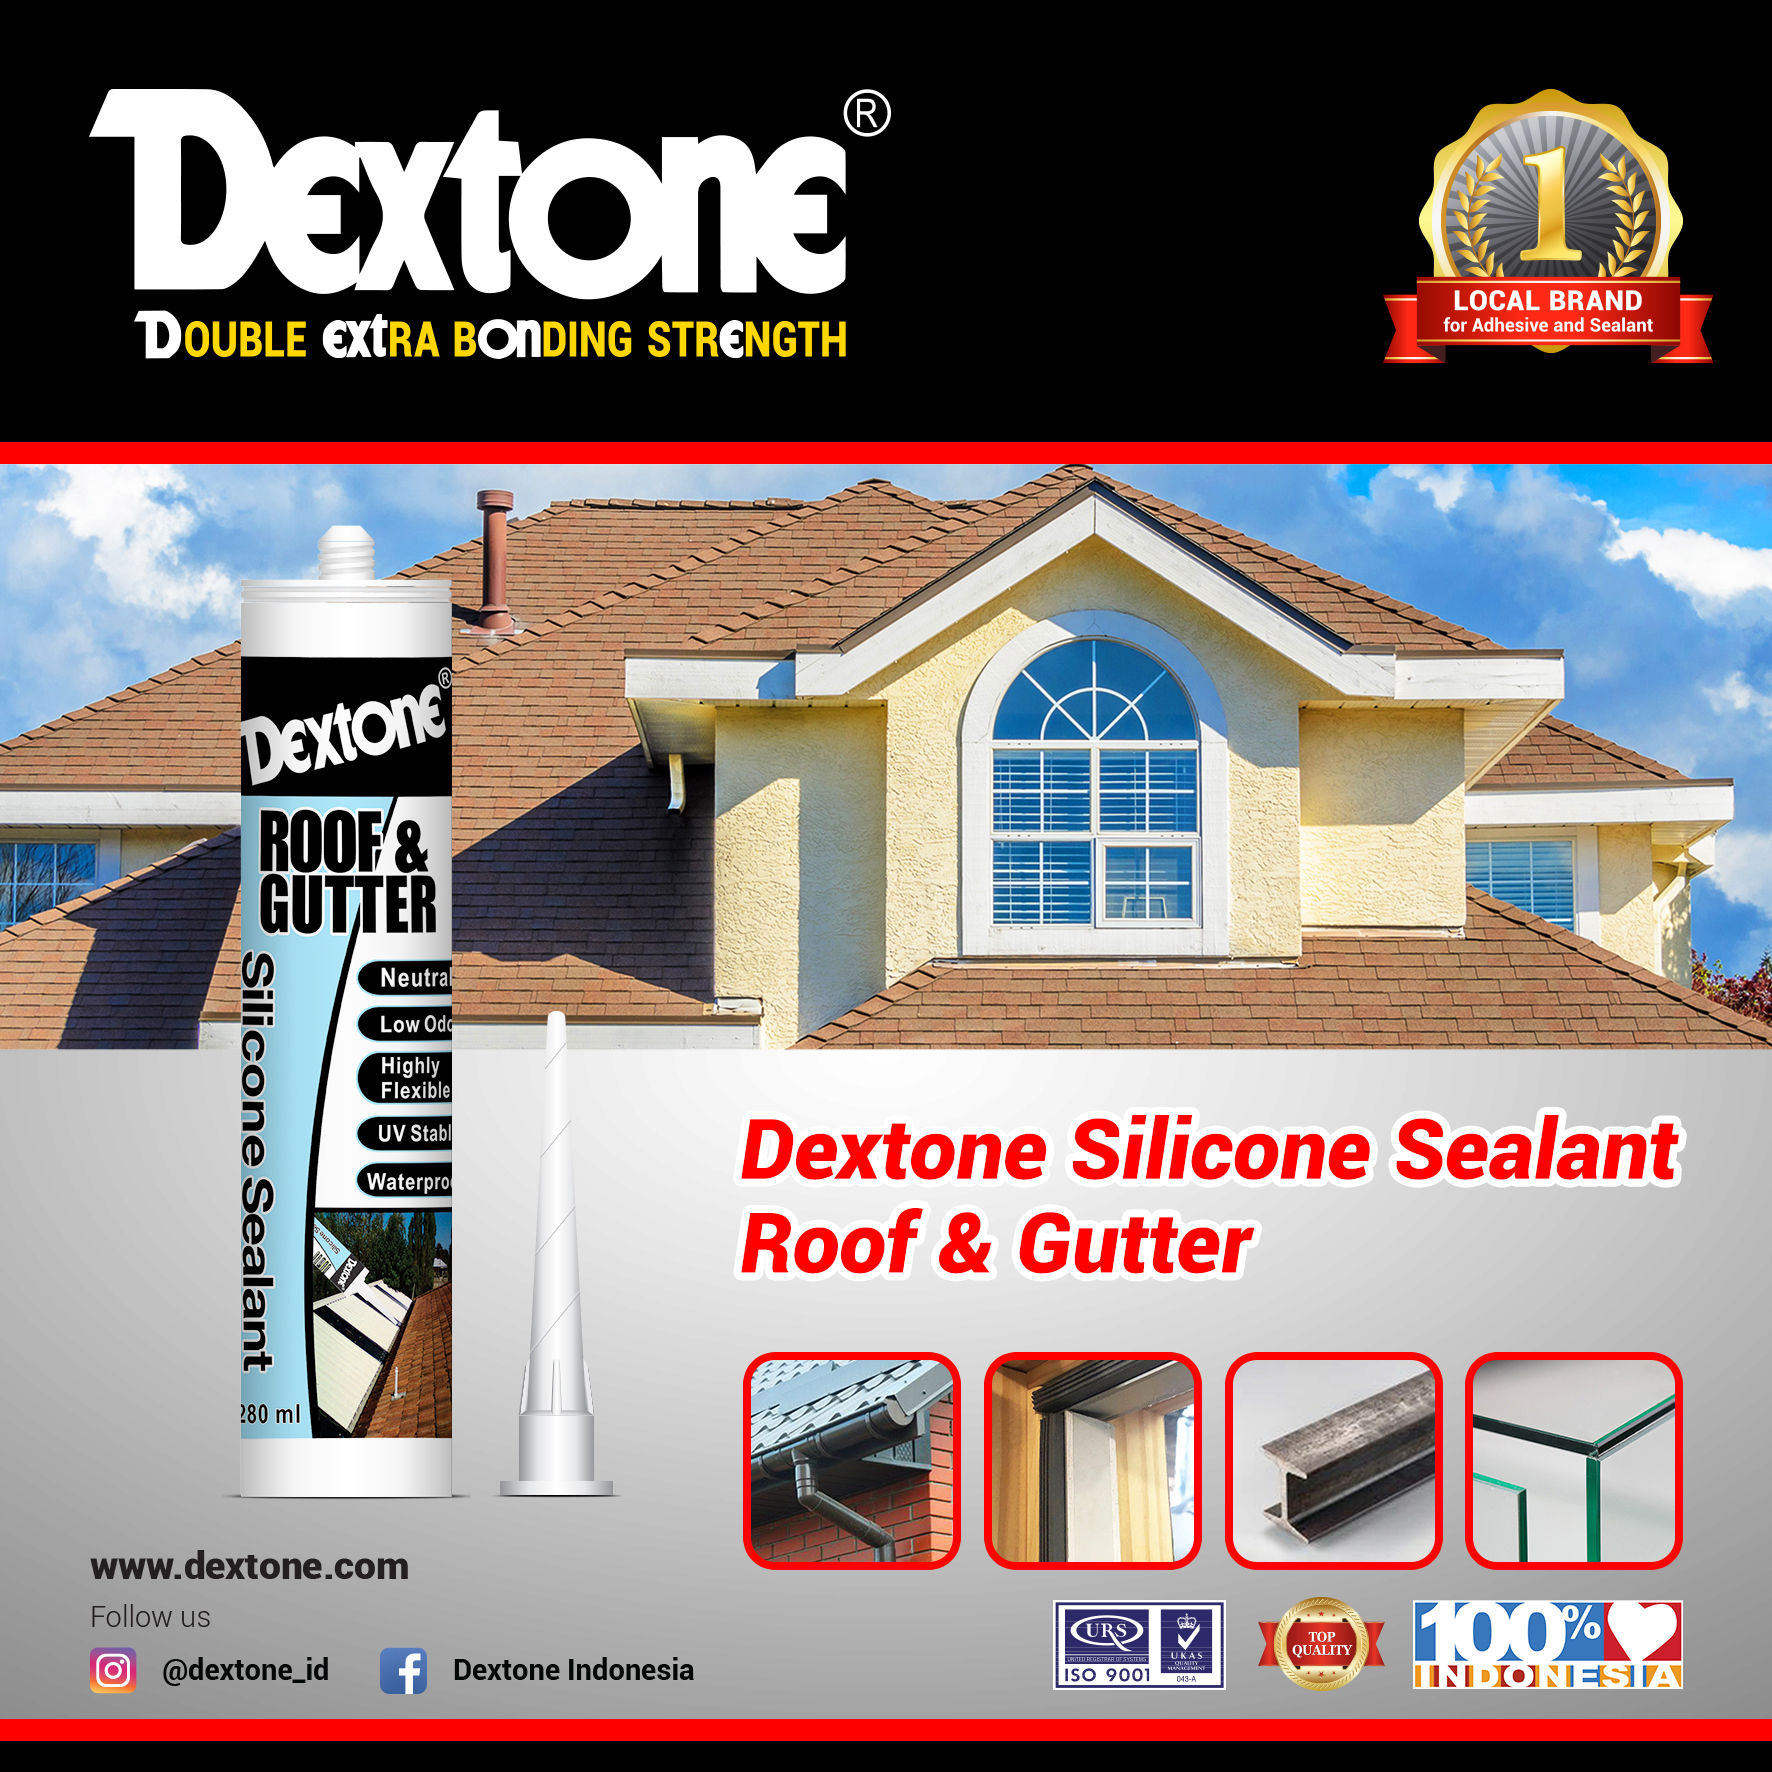 Dextone Silicone Sealant Roof and Gutter